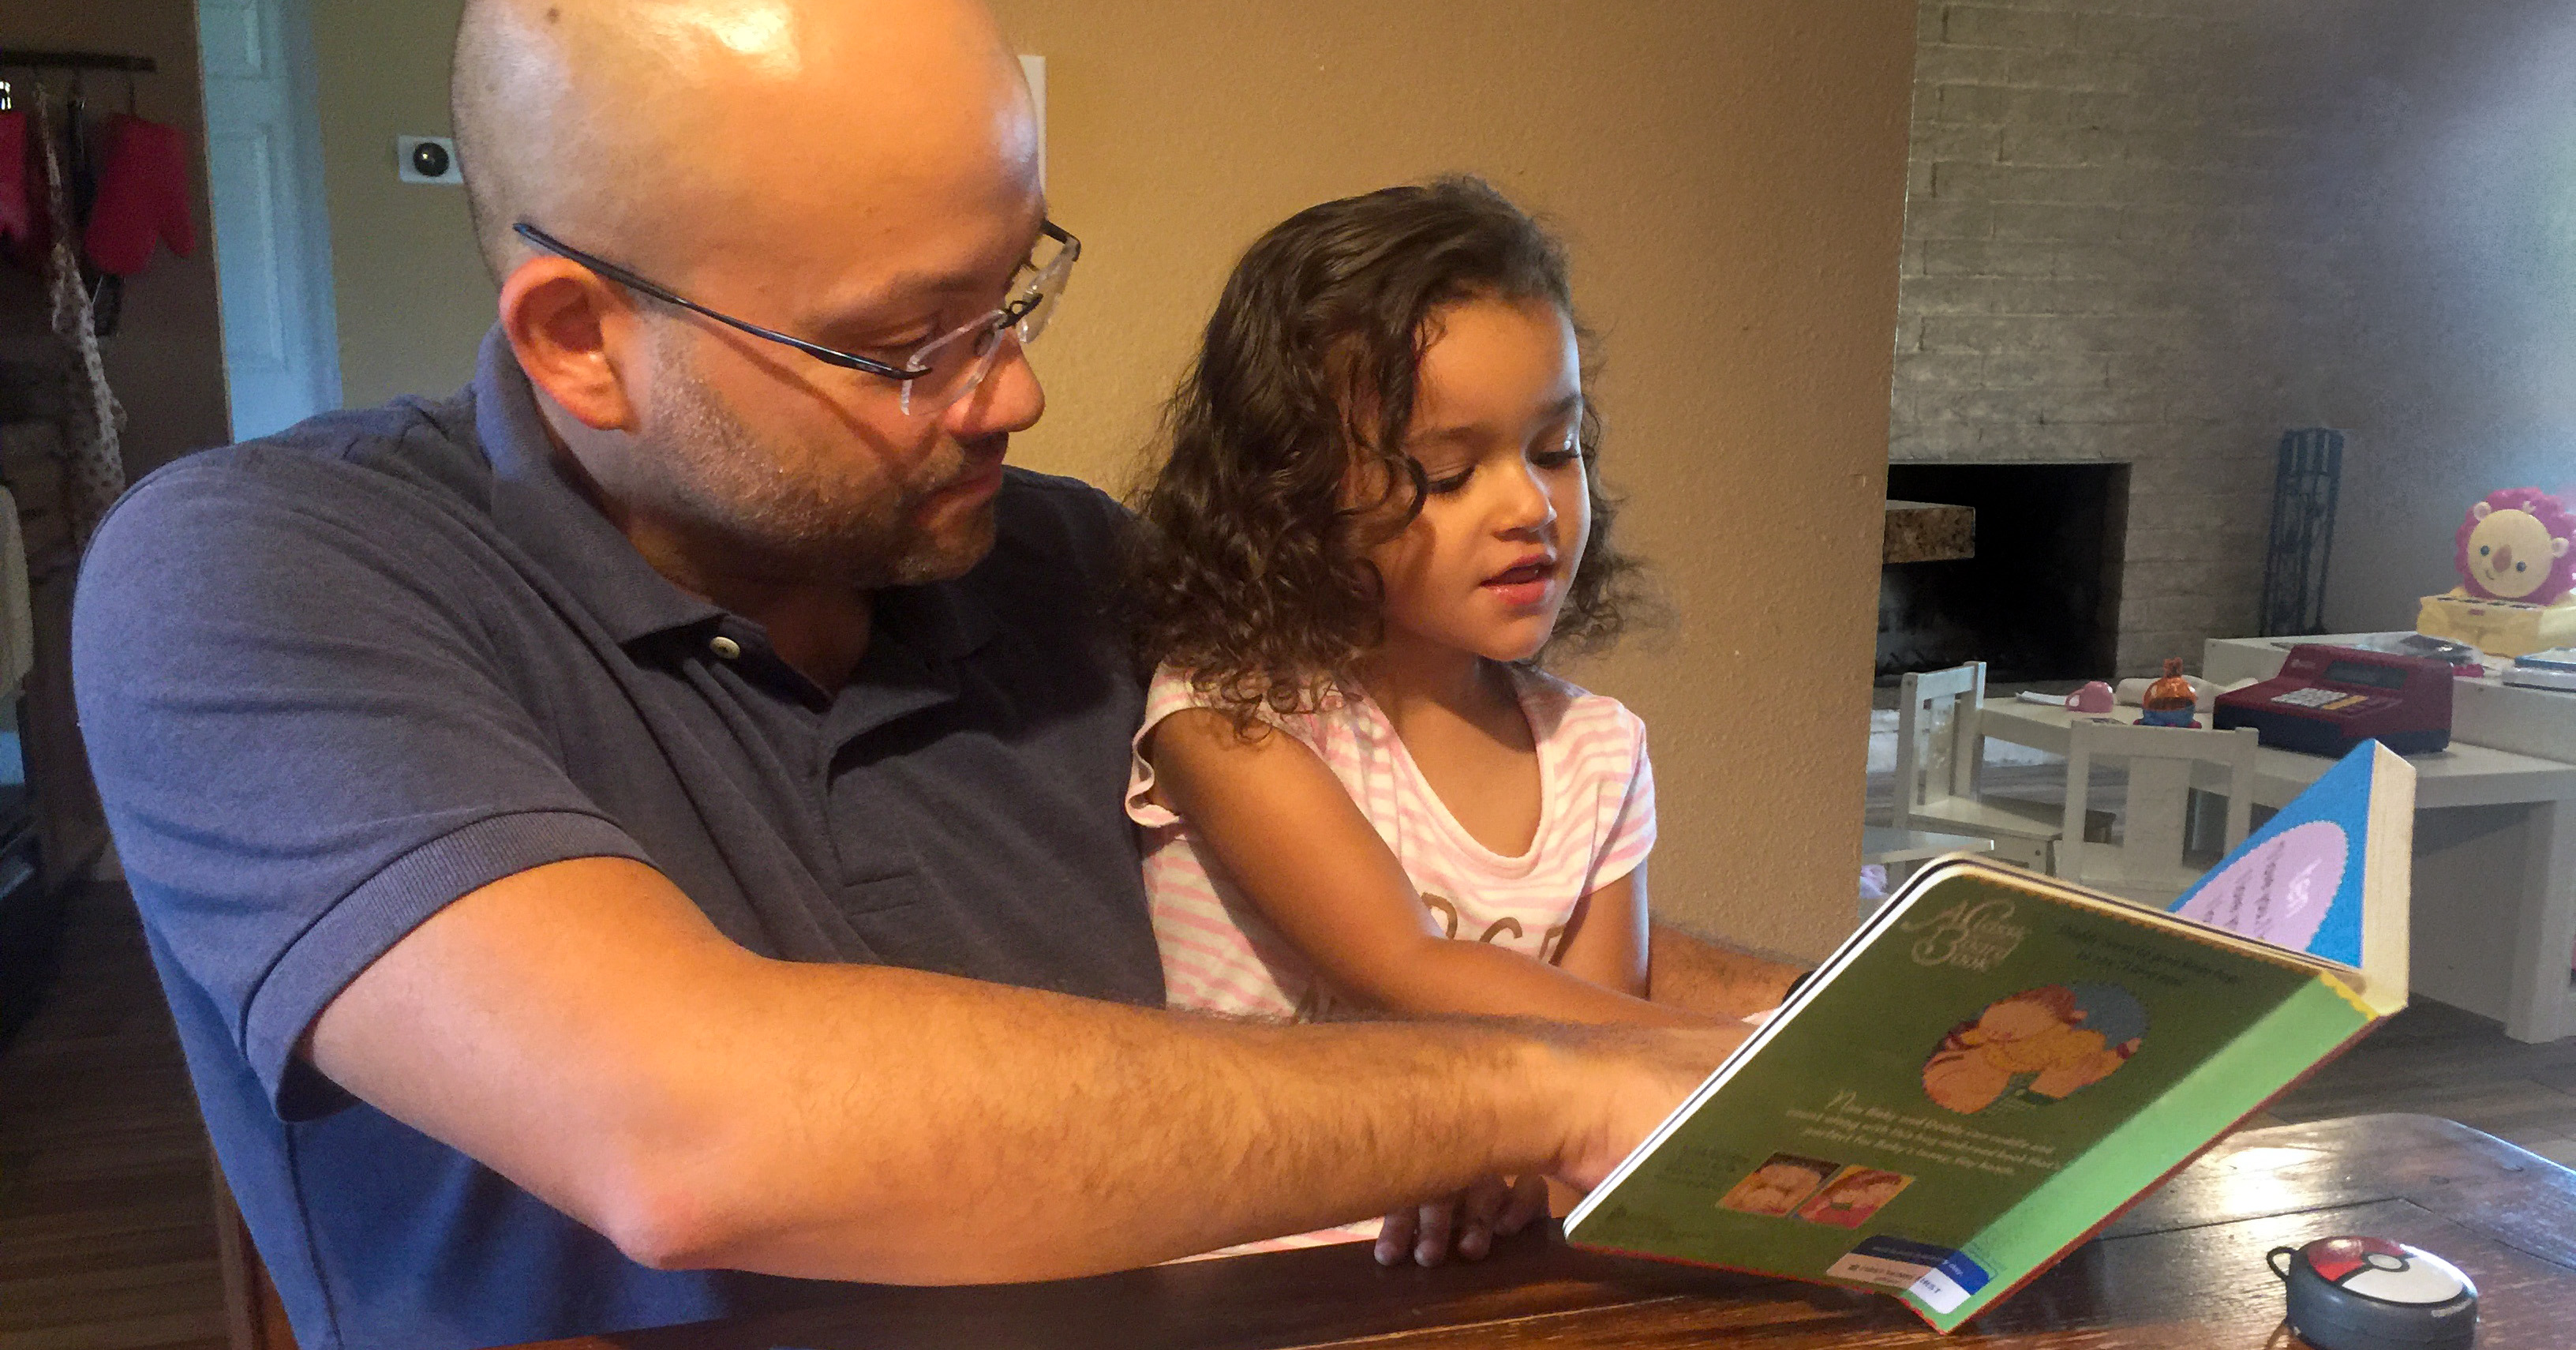 Dad reading book to young daugher